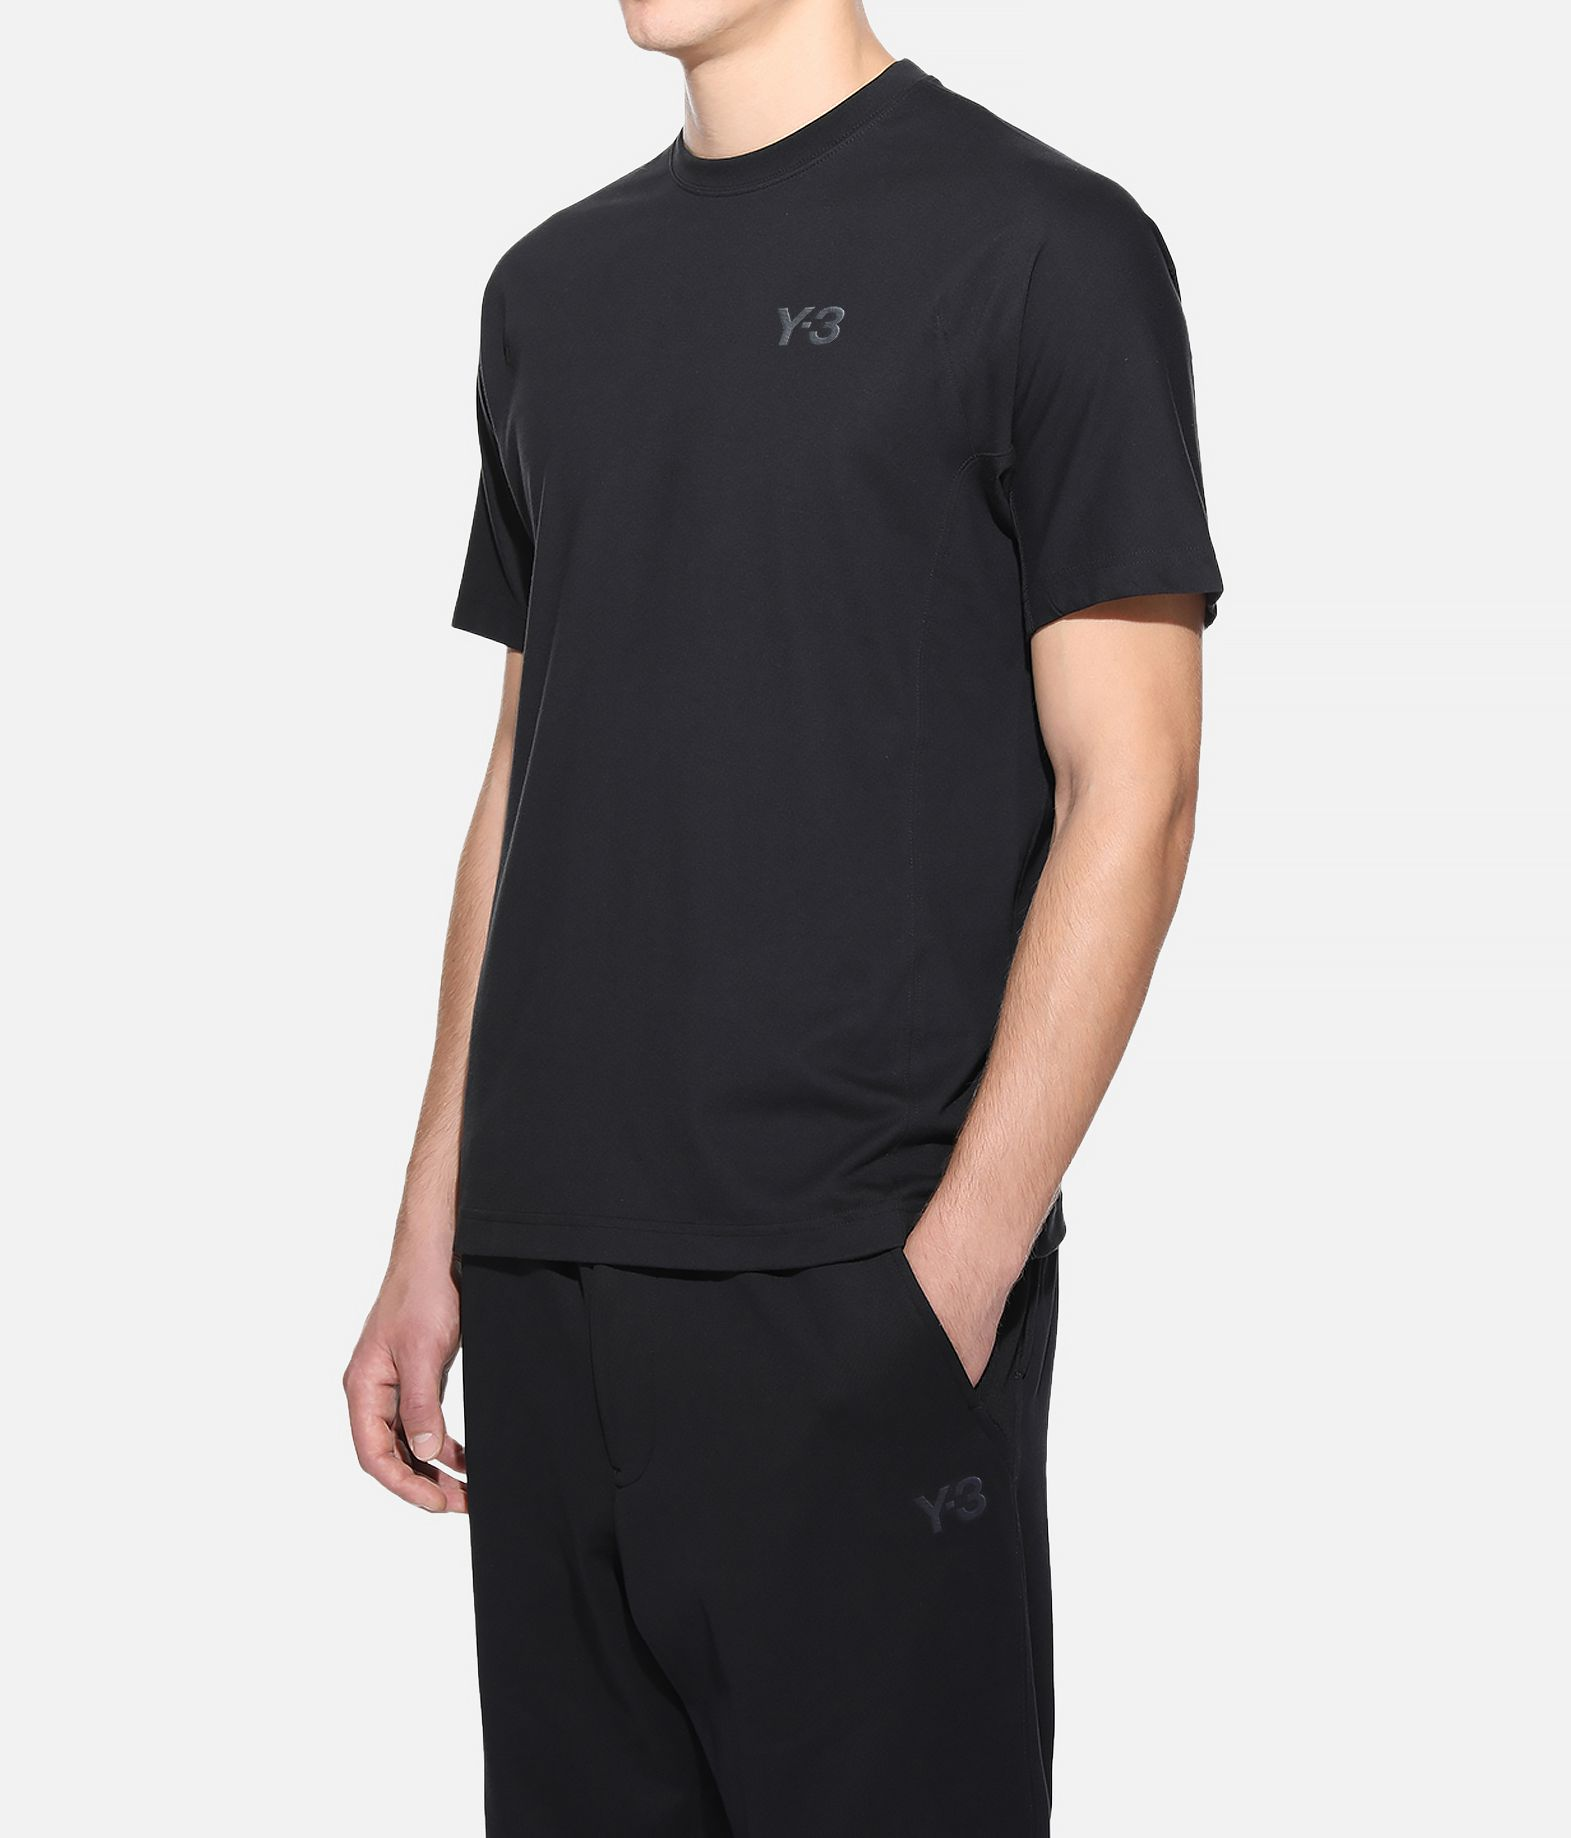 Y-3 Y-3 Graphic Tee Short sleeve t-shirt Man e